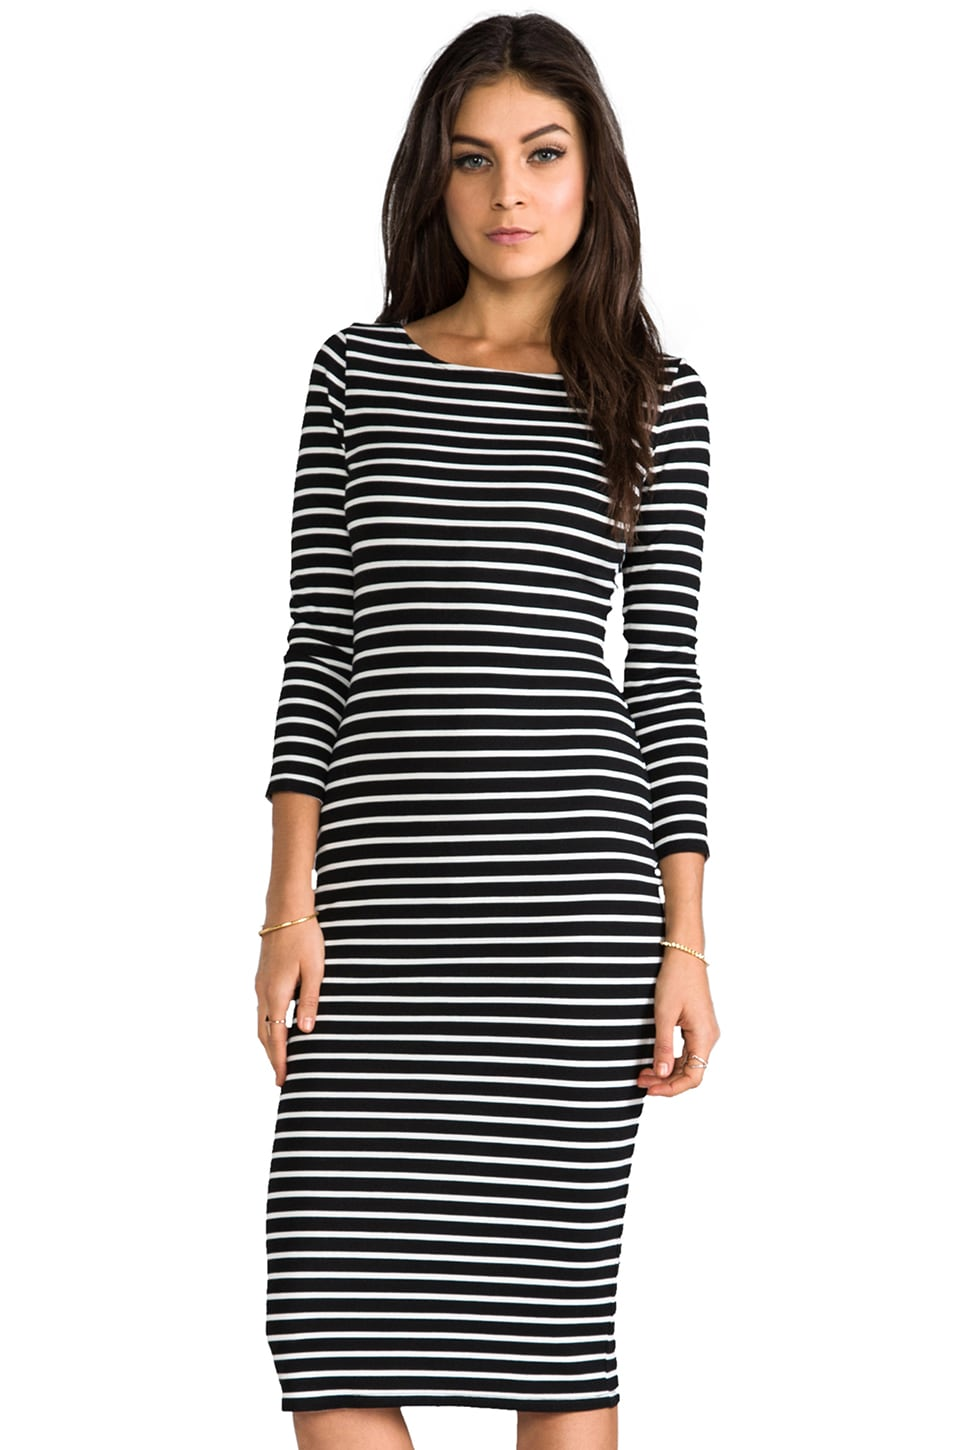 Velvet by Graham & Spencer Velvet Ponti Stripes Pandora Dress in Black